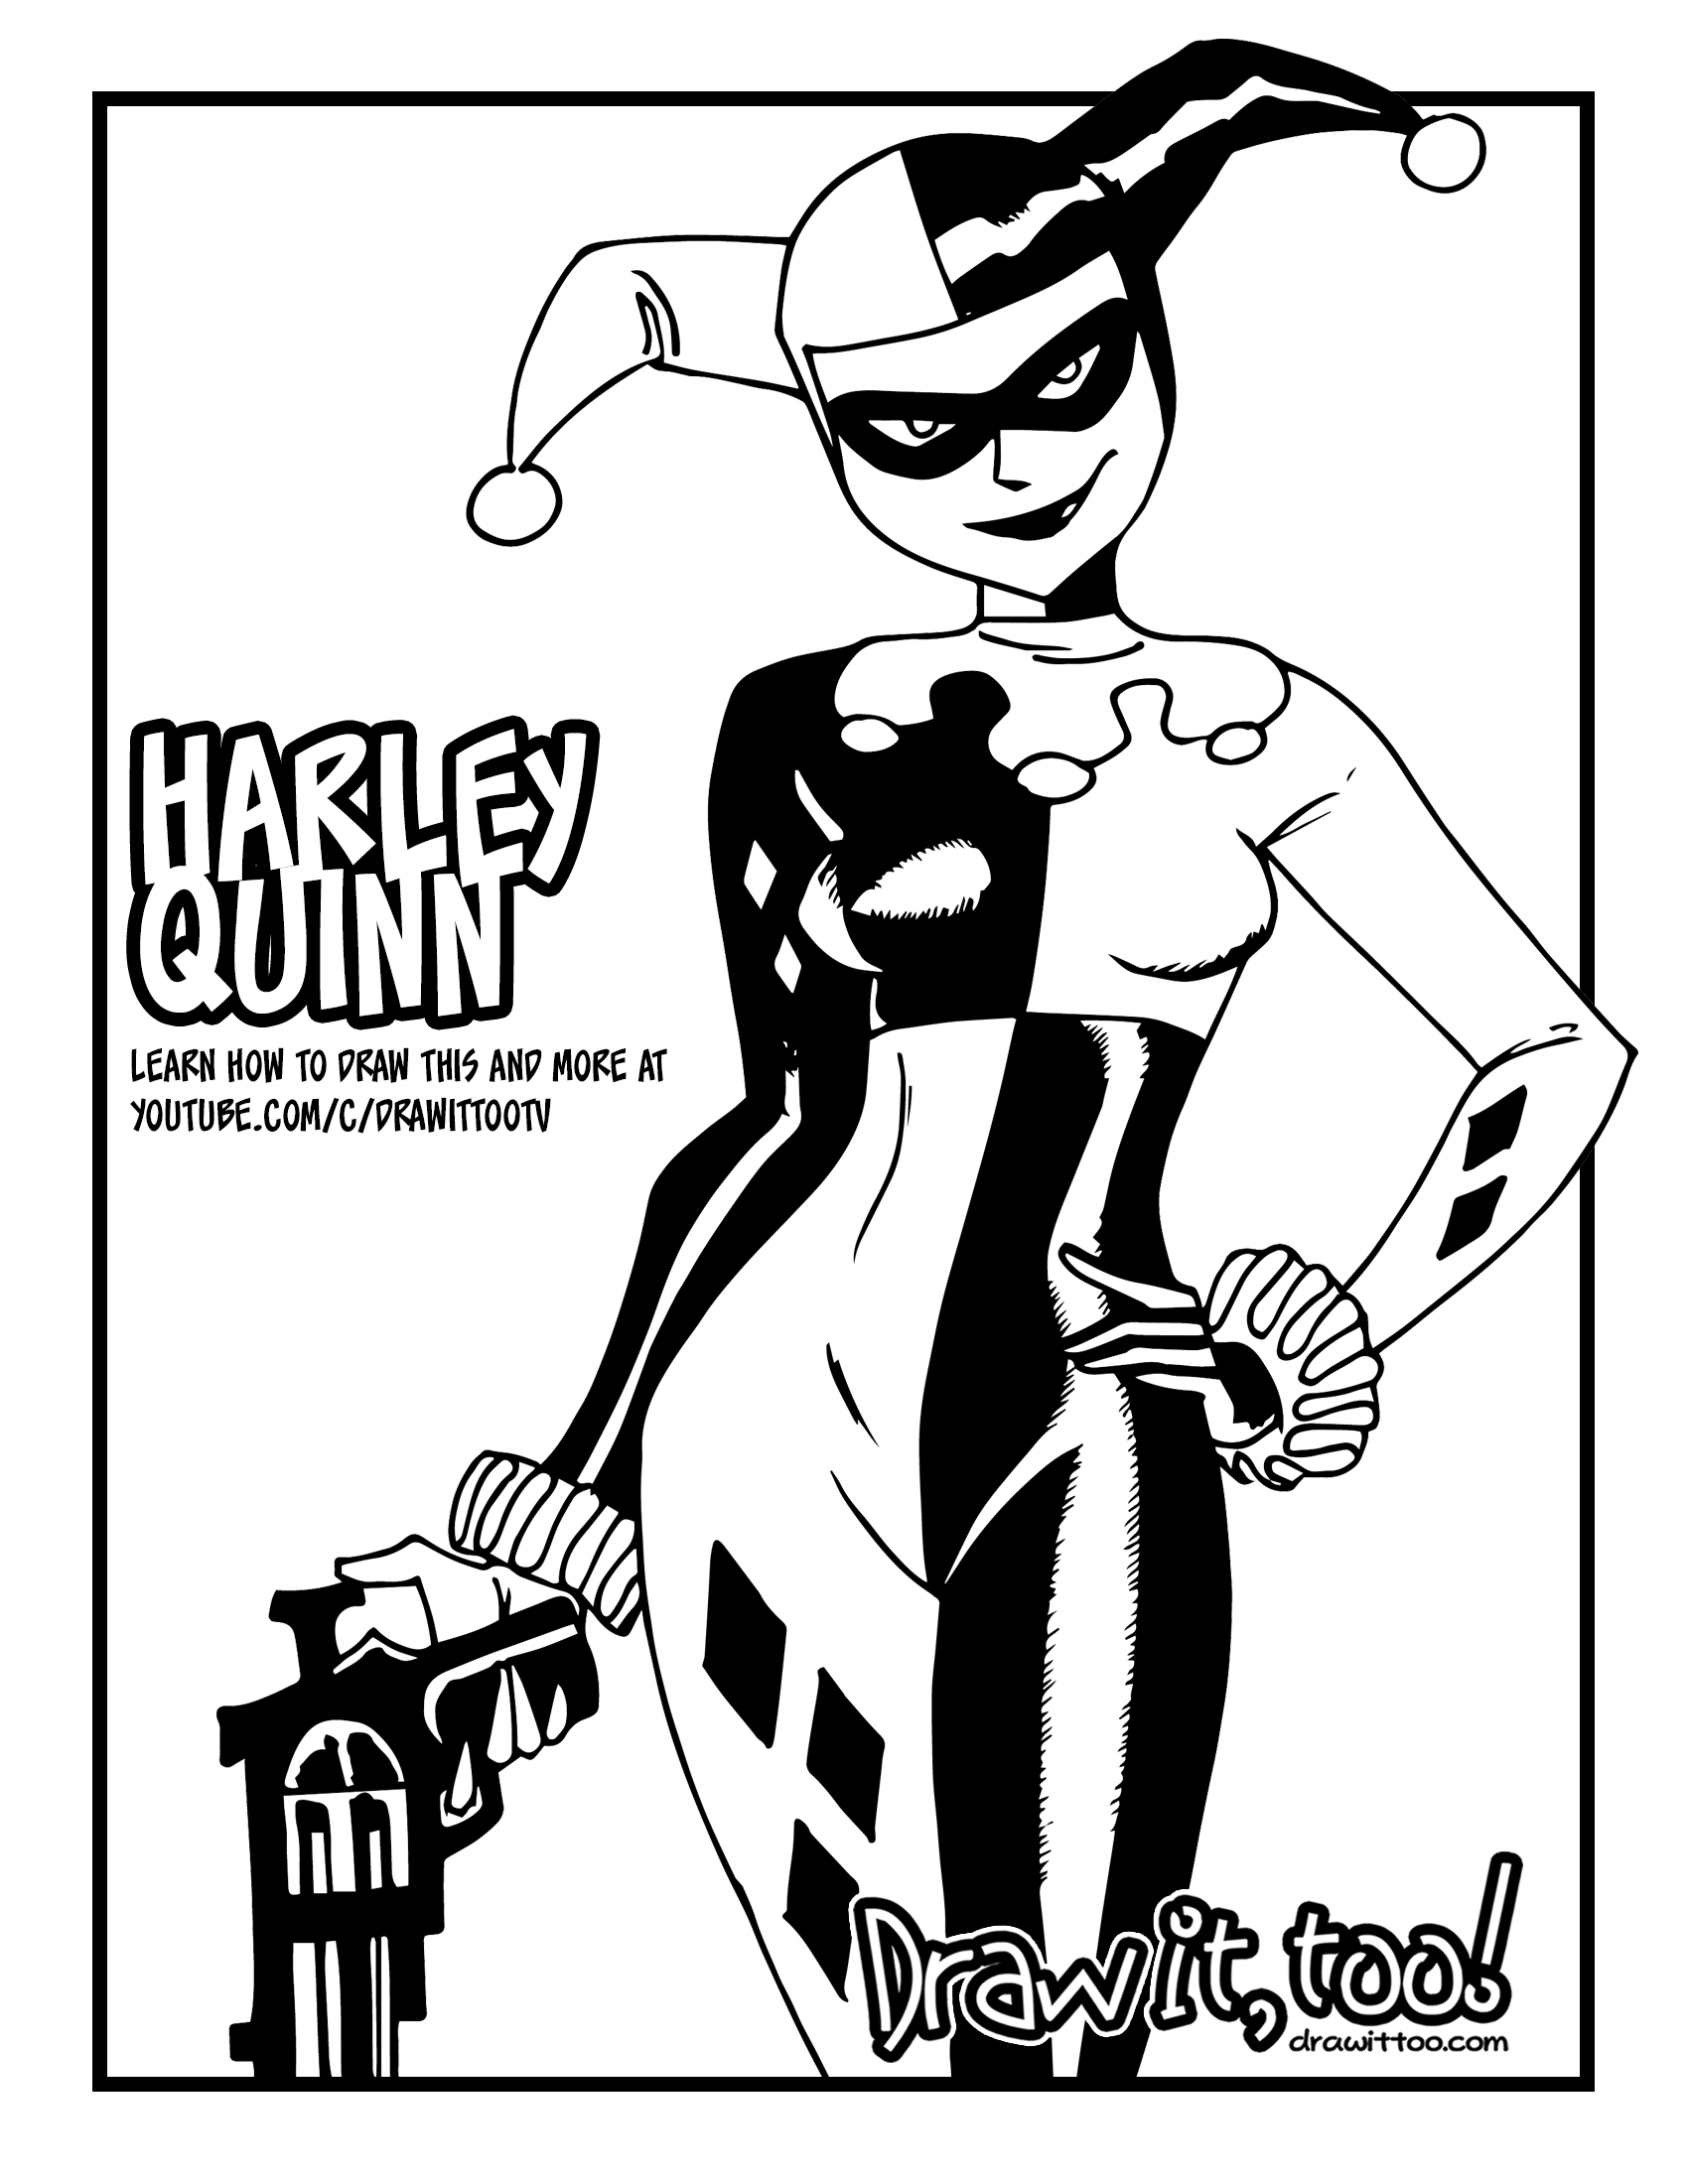 How to Draw HARLEY QUINN (DC Animated Universe) Drawing